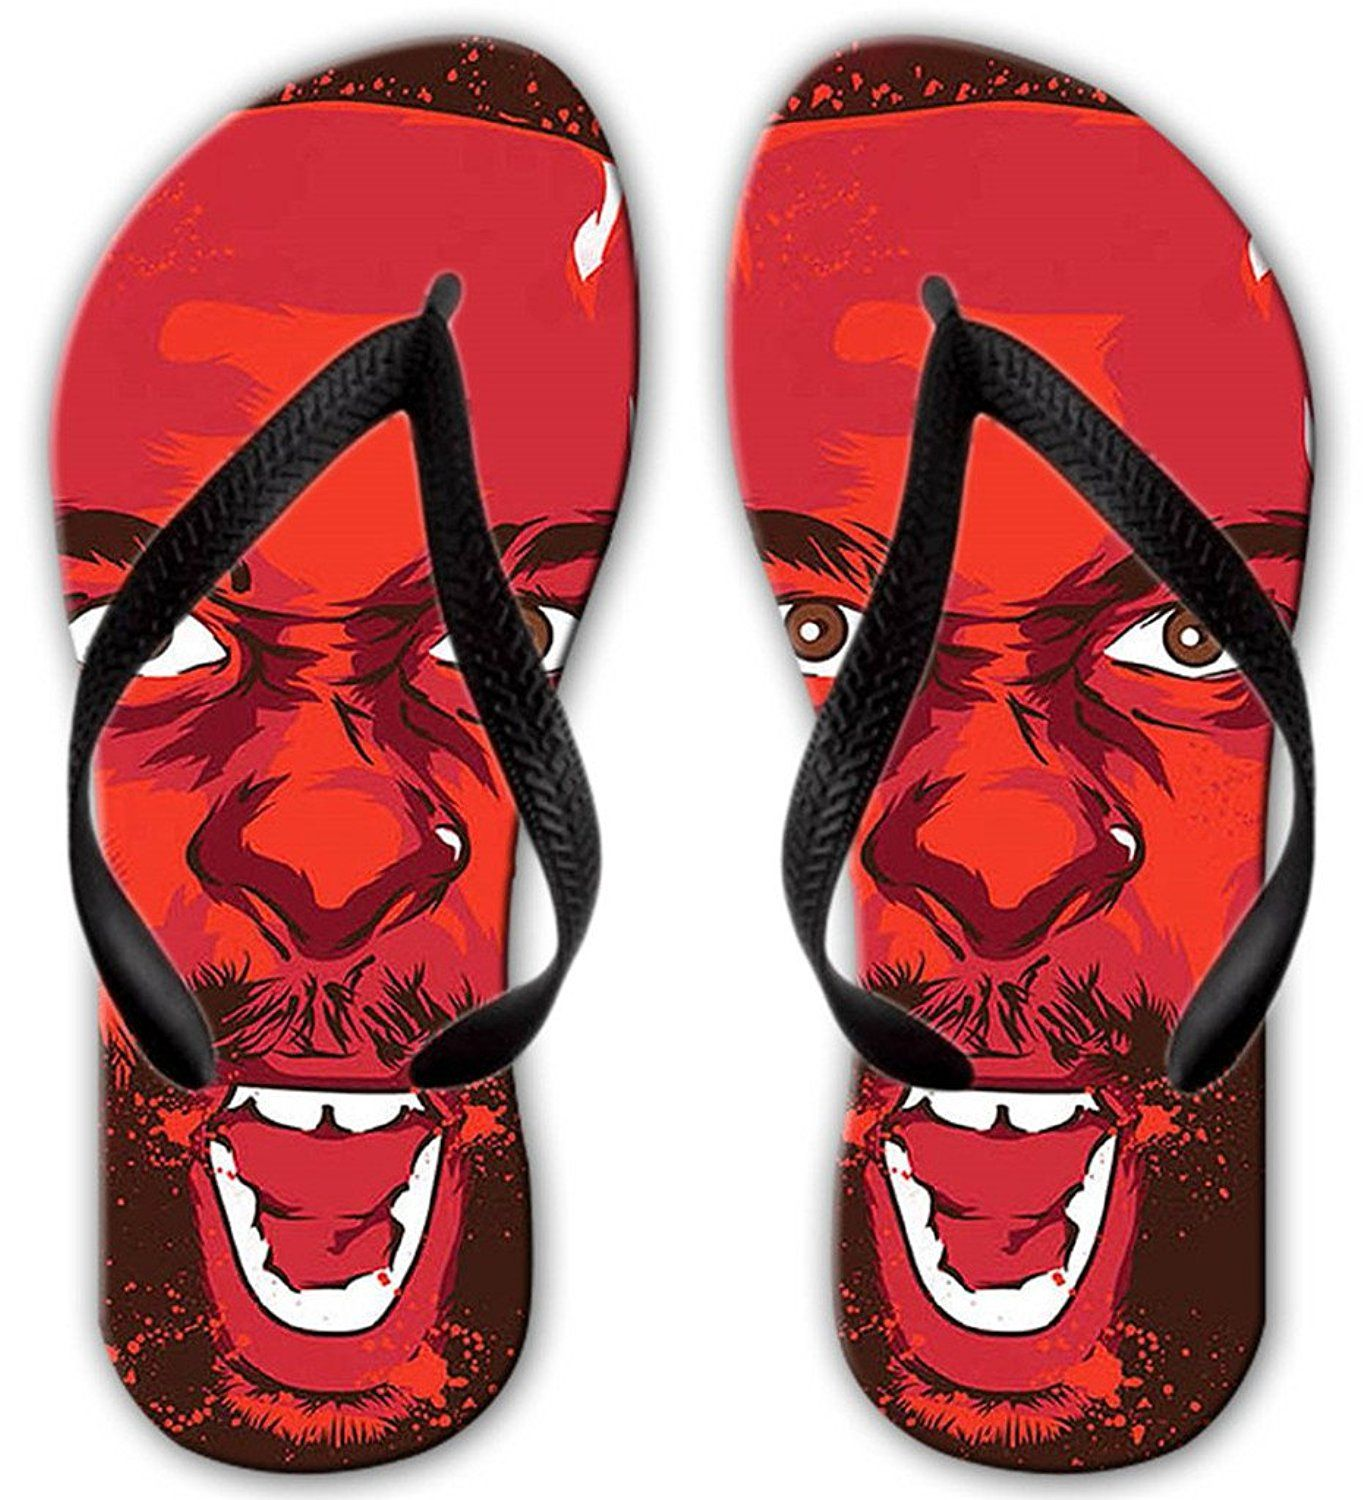 Fire Tiger Unisex Summer Casual Flip Flop Beach Slippers Flat Sandals